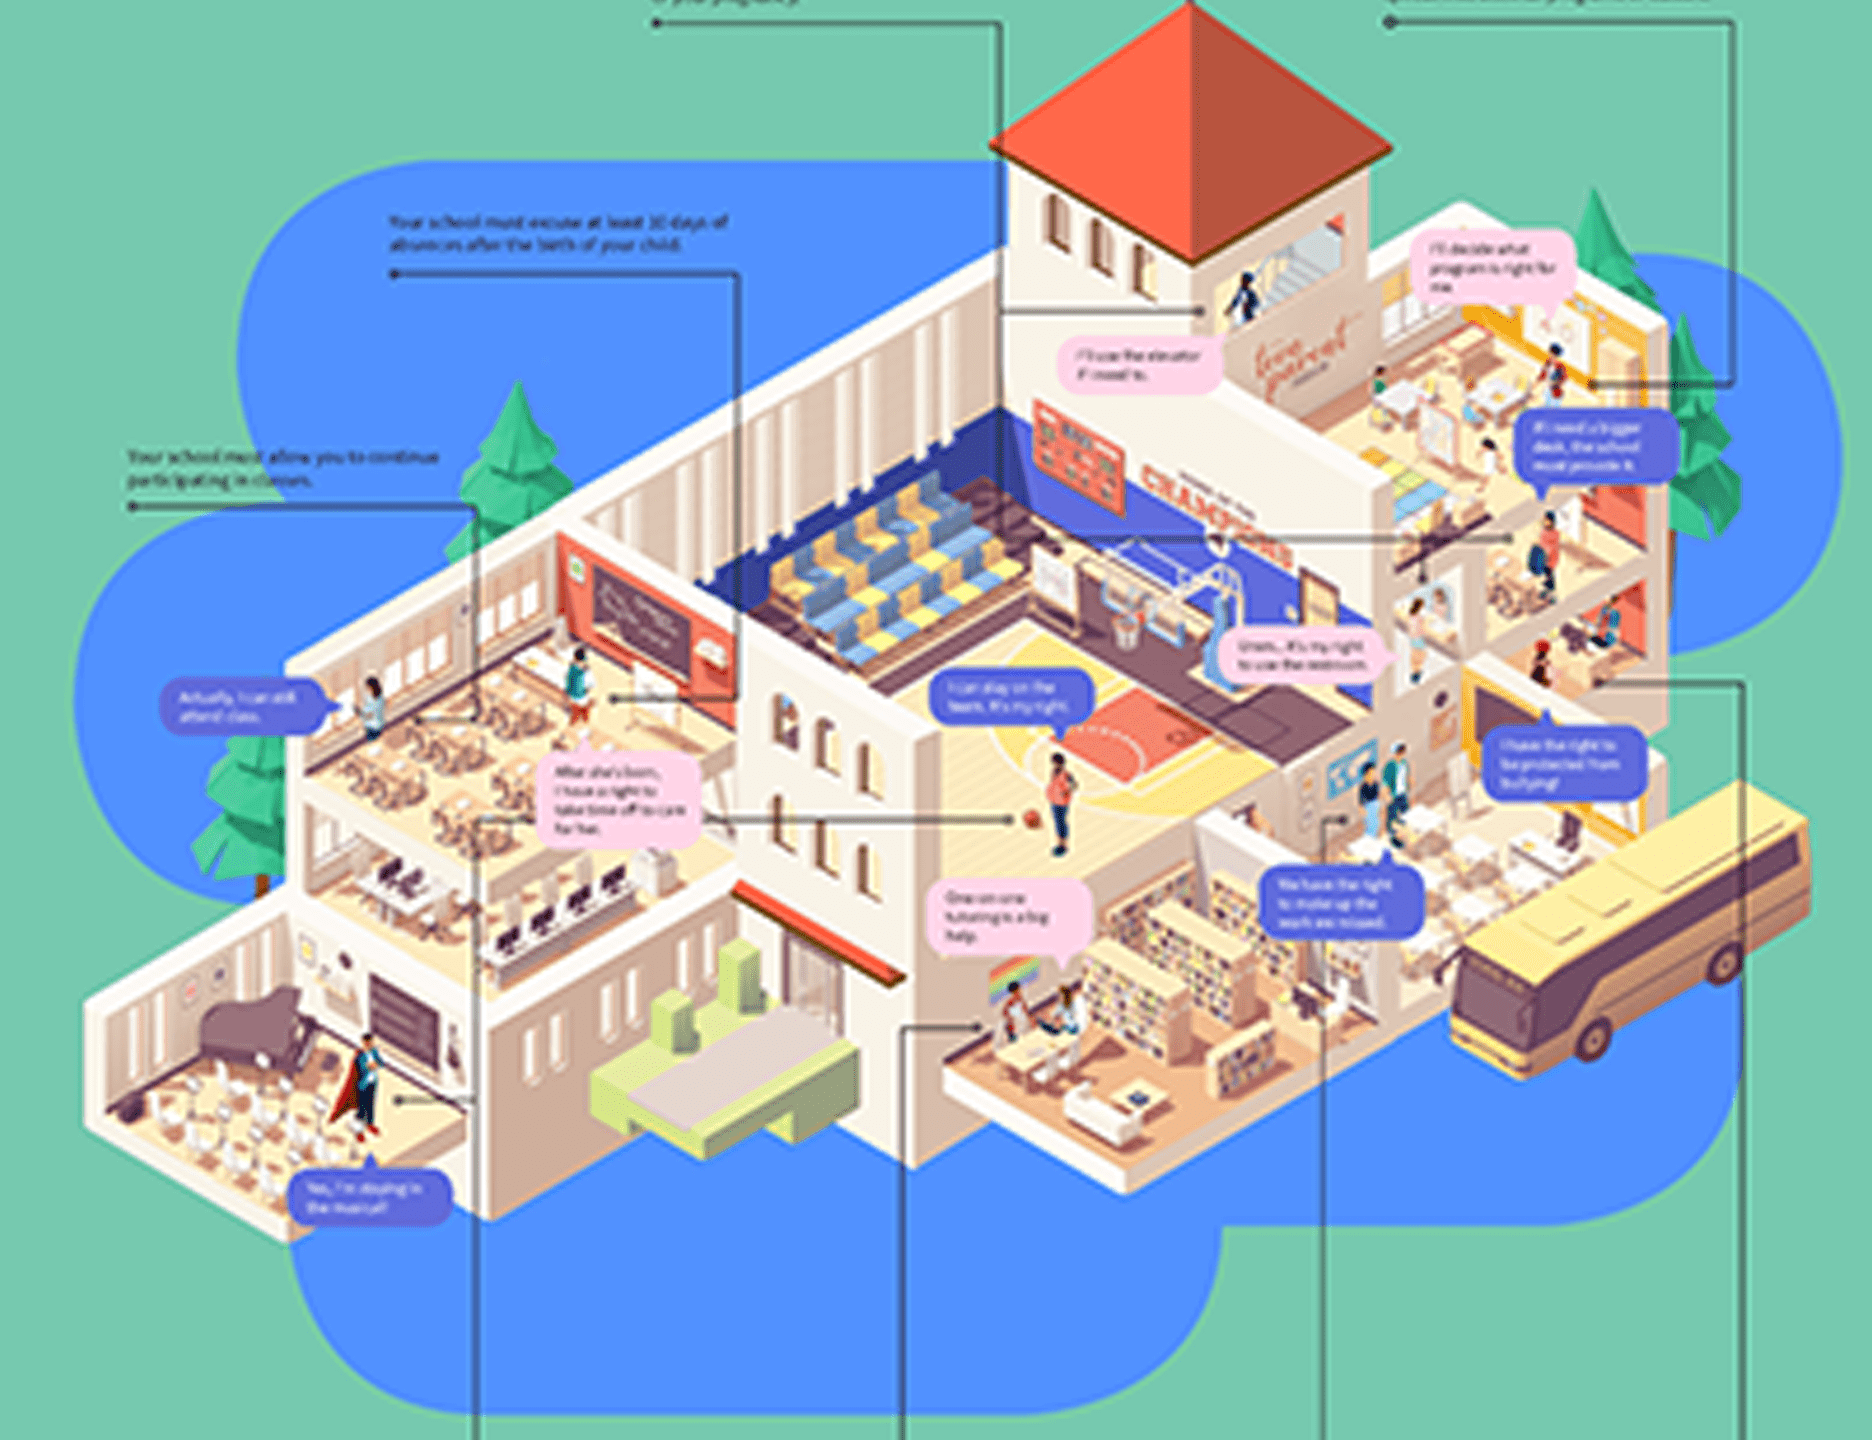 Image is a snapshot of the infographic, depicting cross-section graphic of a school, with various rooms and students and teachers